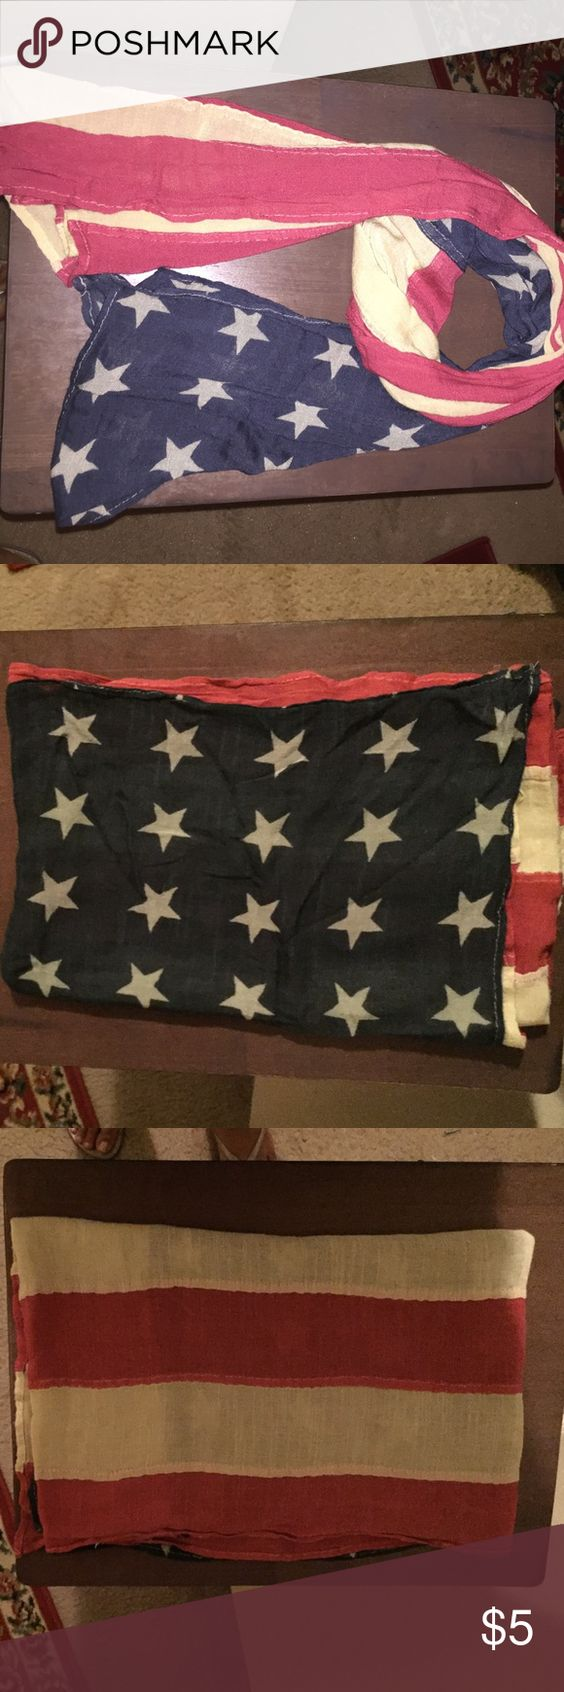 Vintage style Americana scarf Super soft rectangle scarf with vintage American flag print Accessories Scarves & Wraps